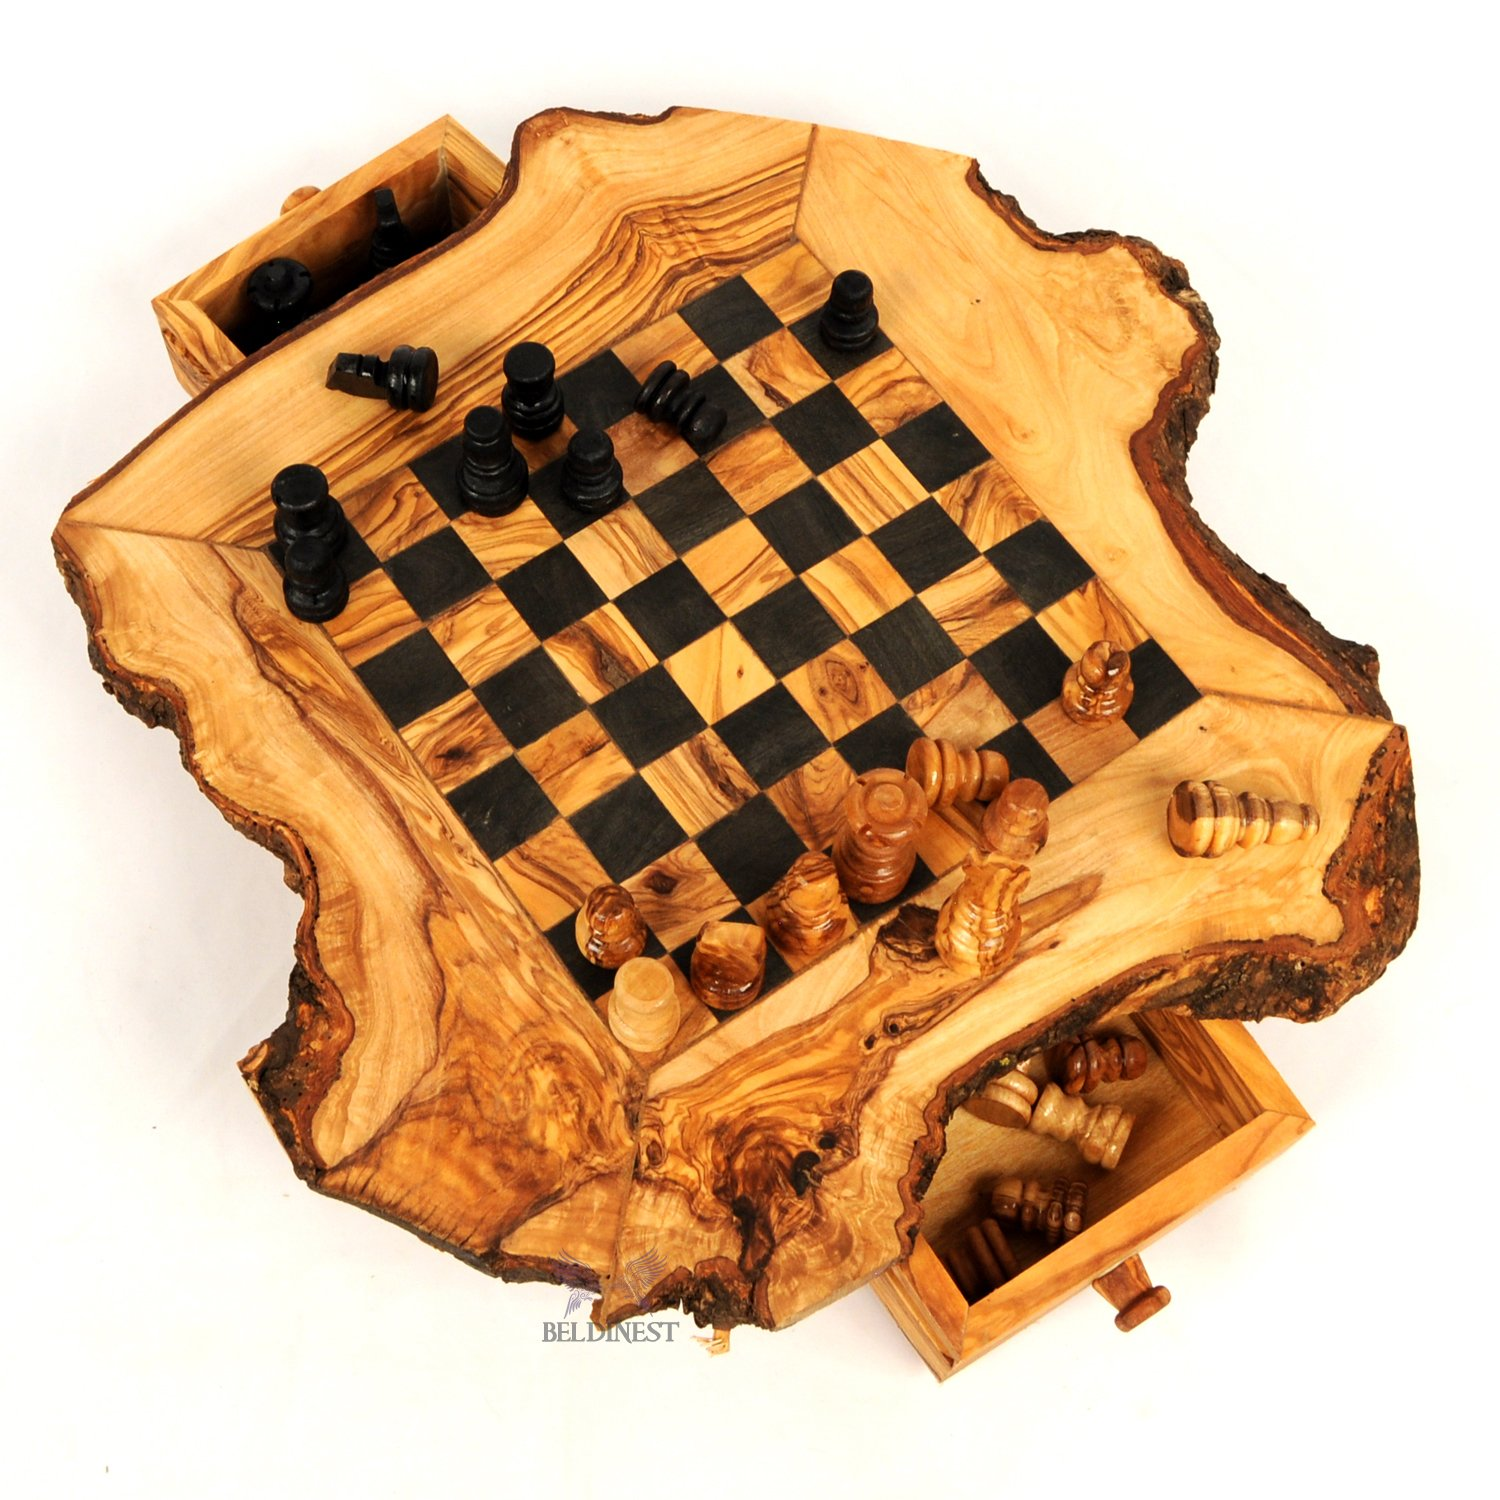 Olive Wood Chess Game Rustic Handmade by BeldiNest